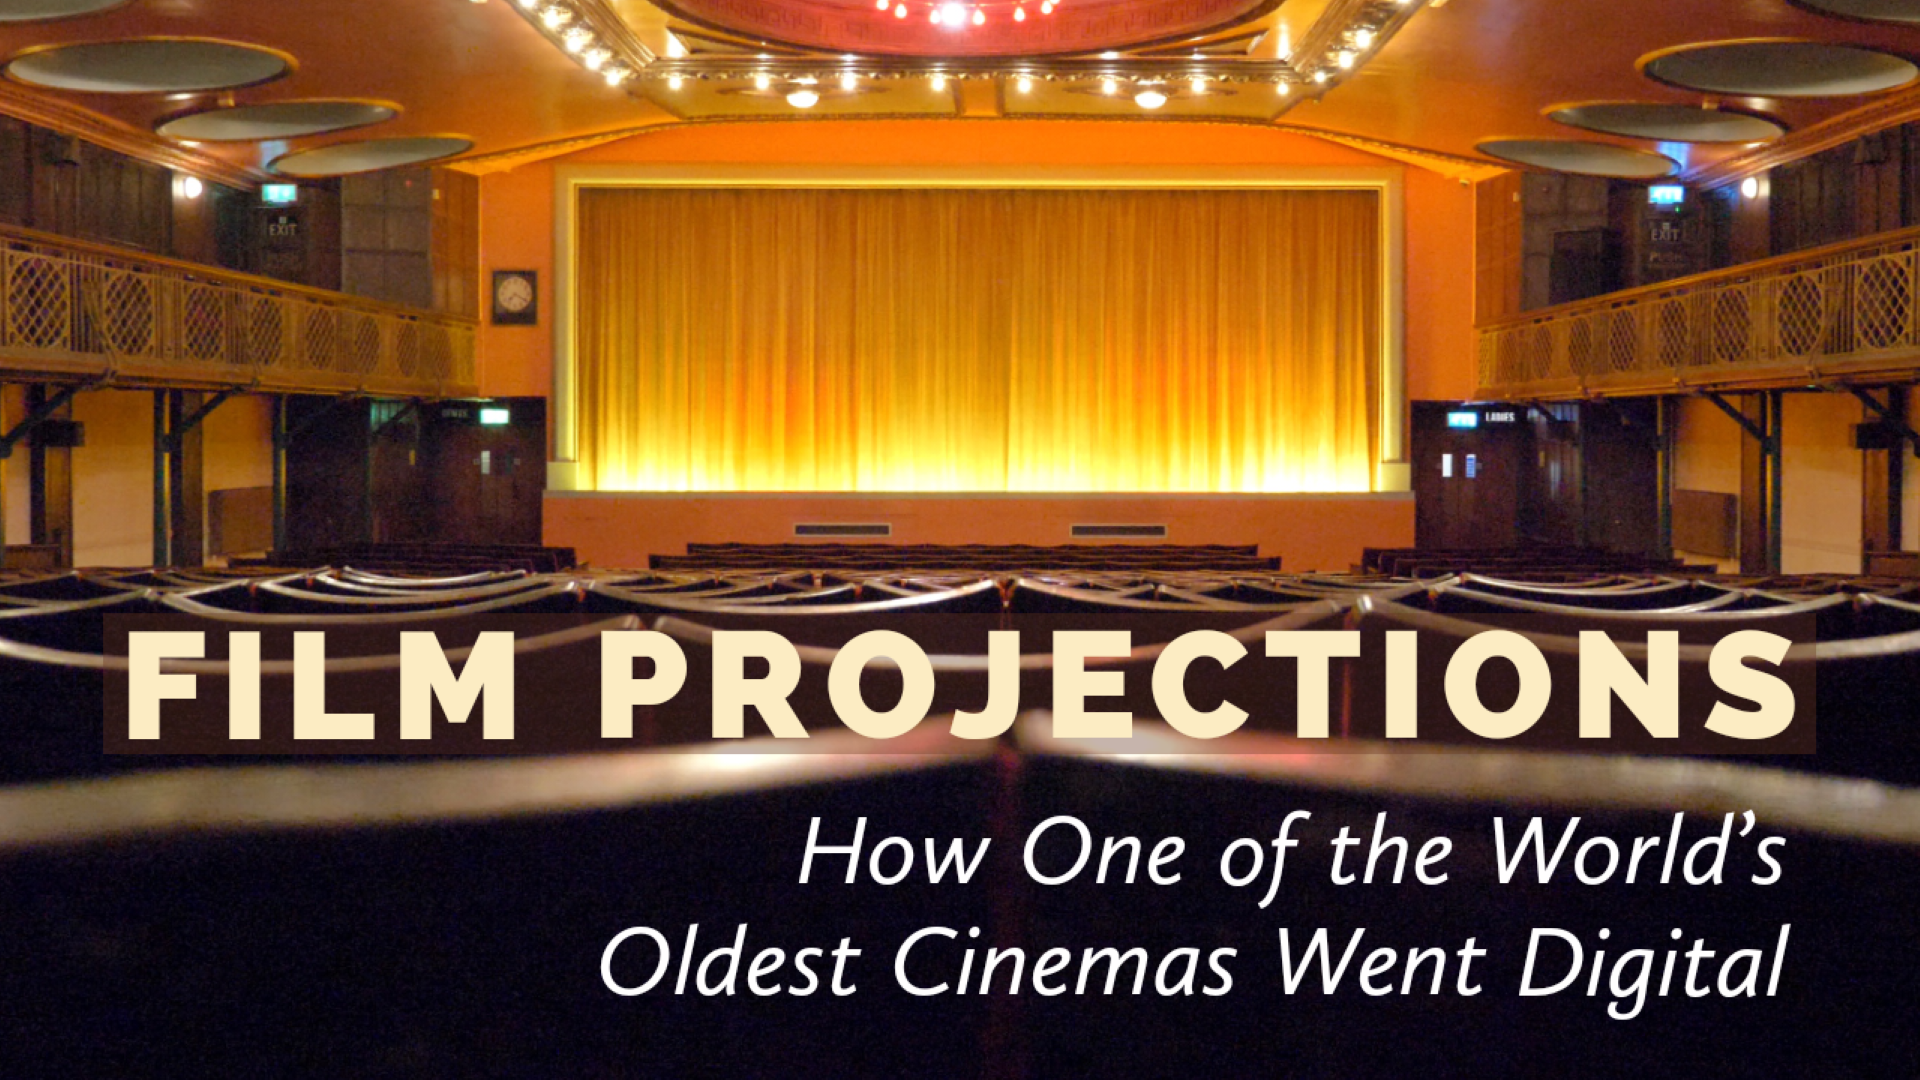 Film Projections Thumbnail 01 1920-1080